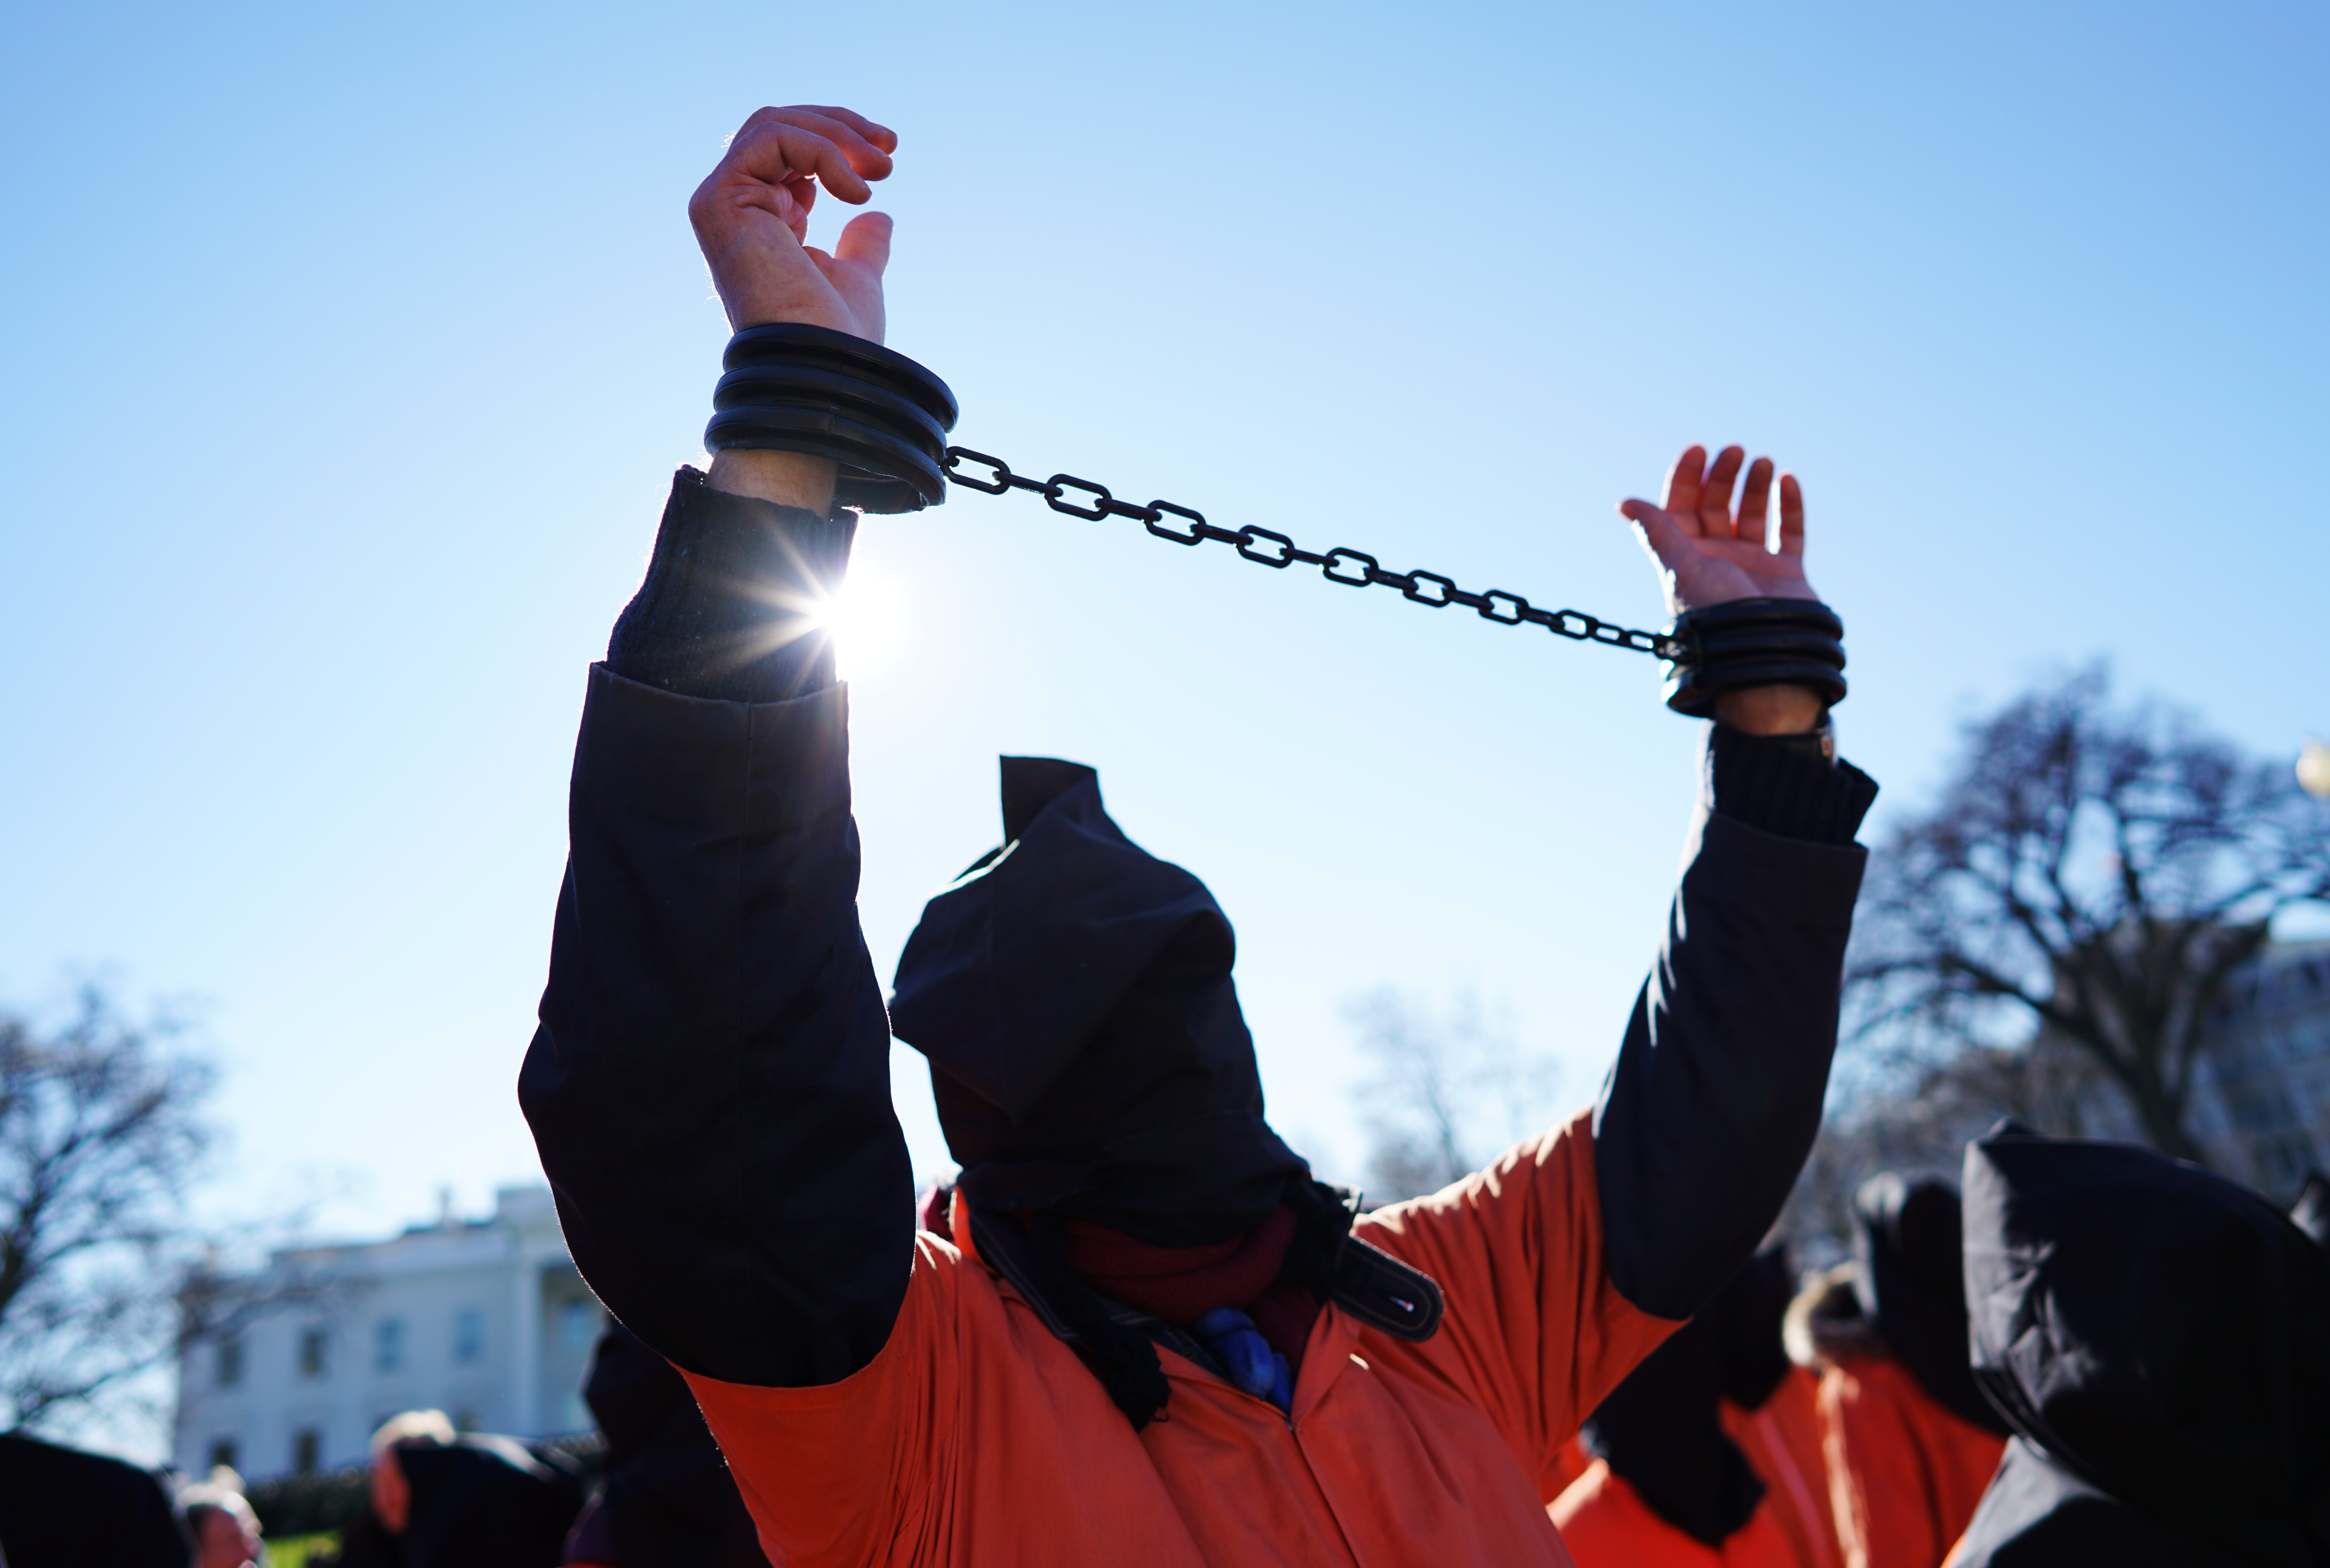 A protestor calling for the closure of the Guantanamo Bay Prison on January 11, 2016, in front of the White House.